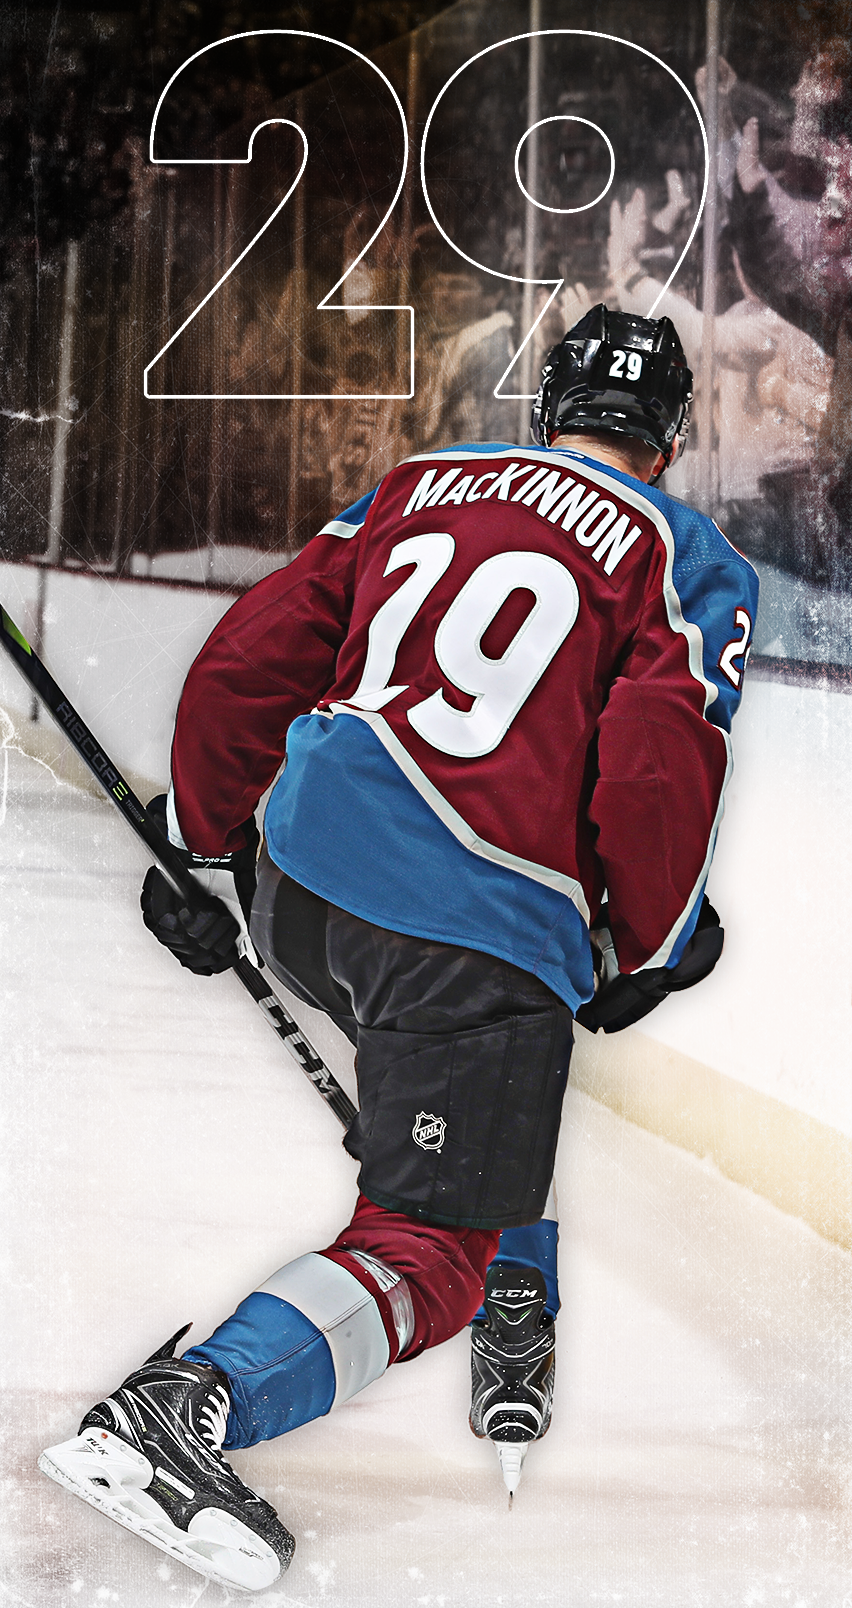 852x1608 - Colorado Avalanche Wallpapers 1